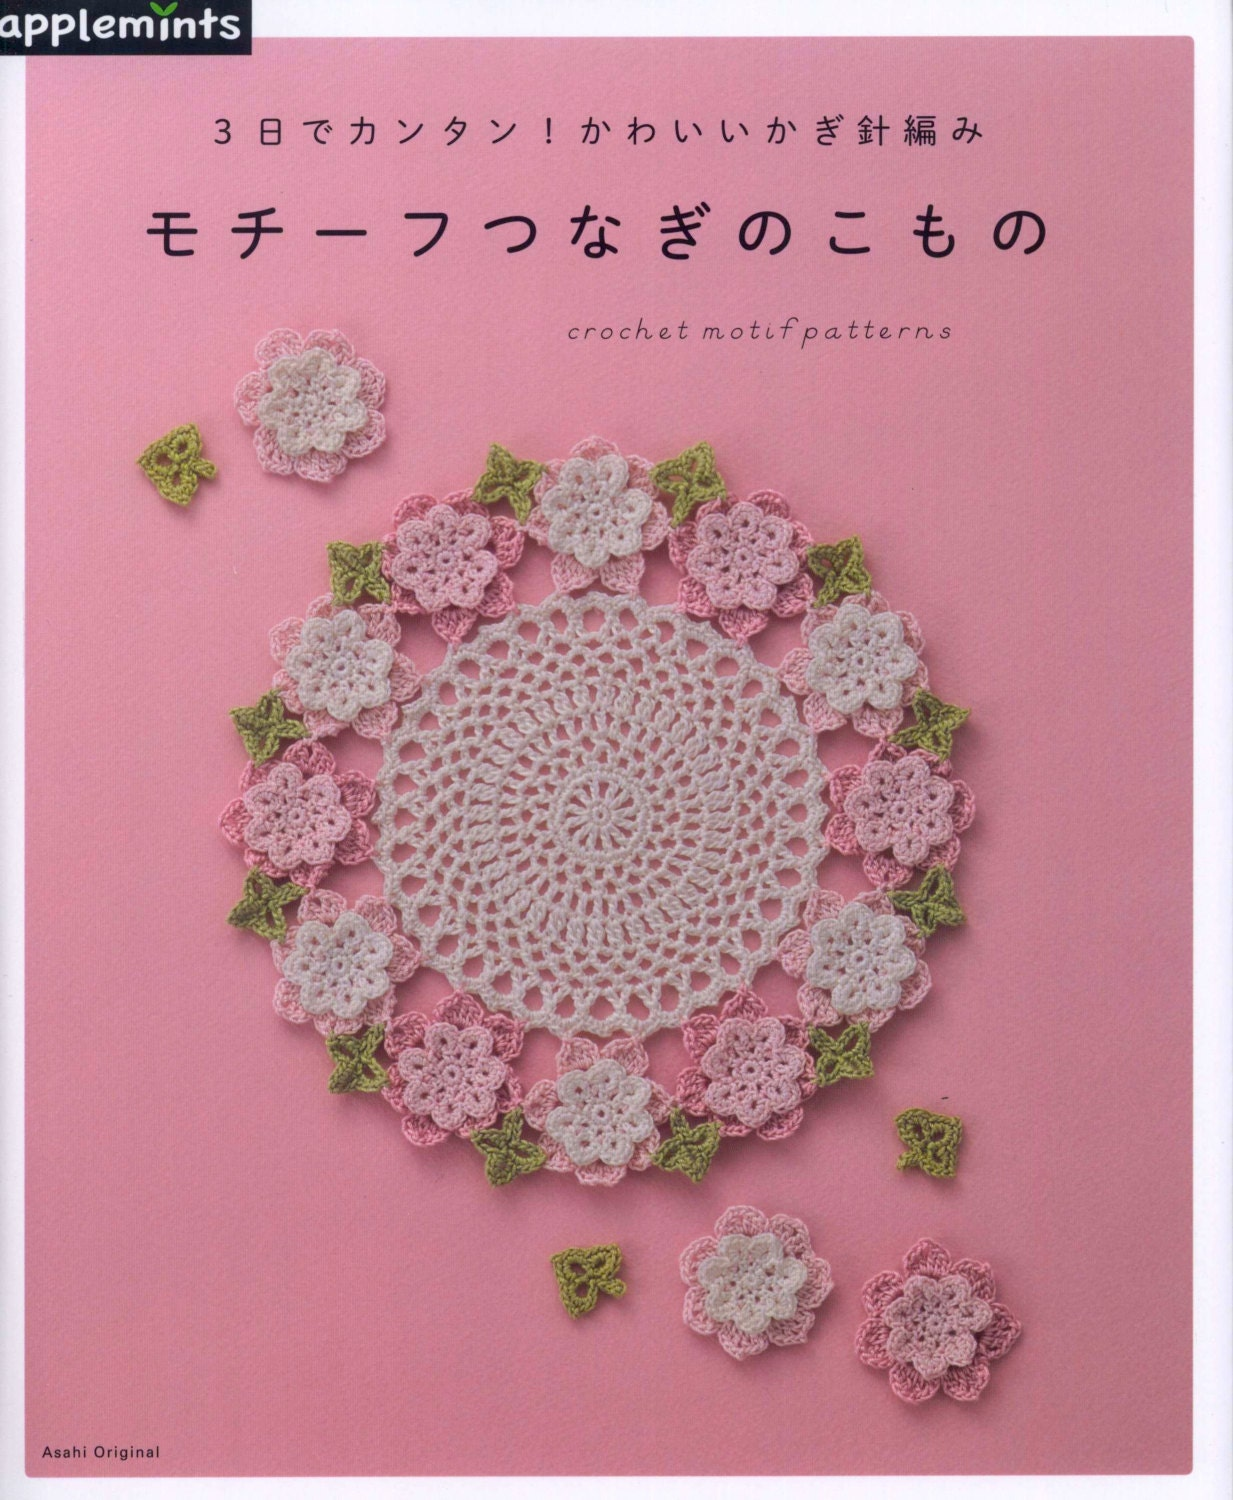 20 Crochet Motif Patterns Japanese Crochet Book Pdf Crochet Etsy